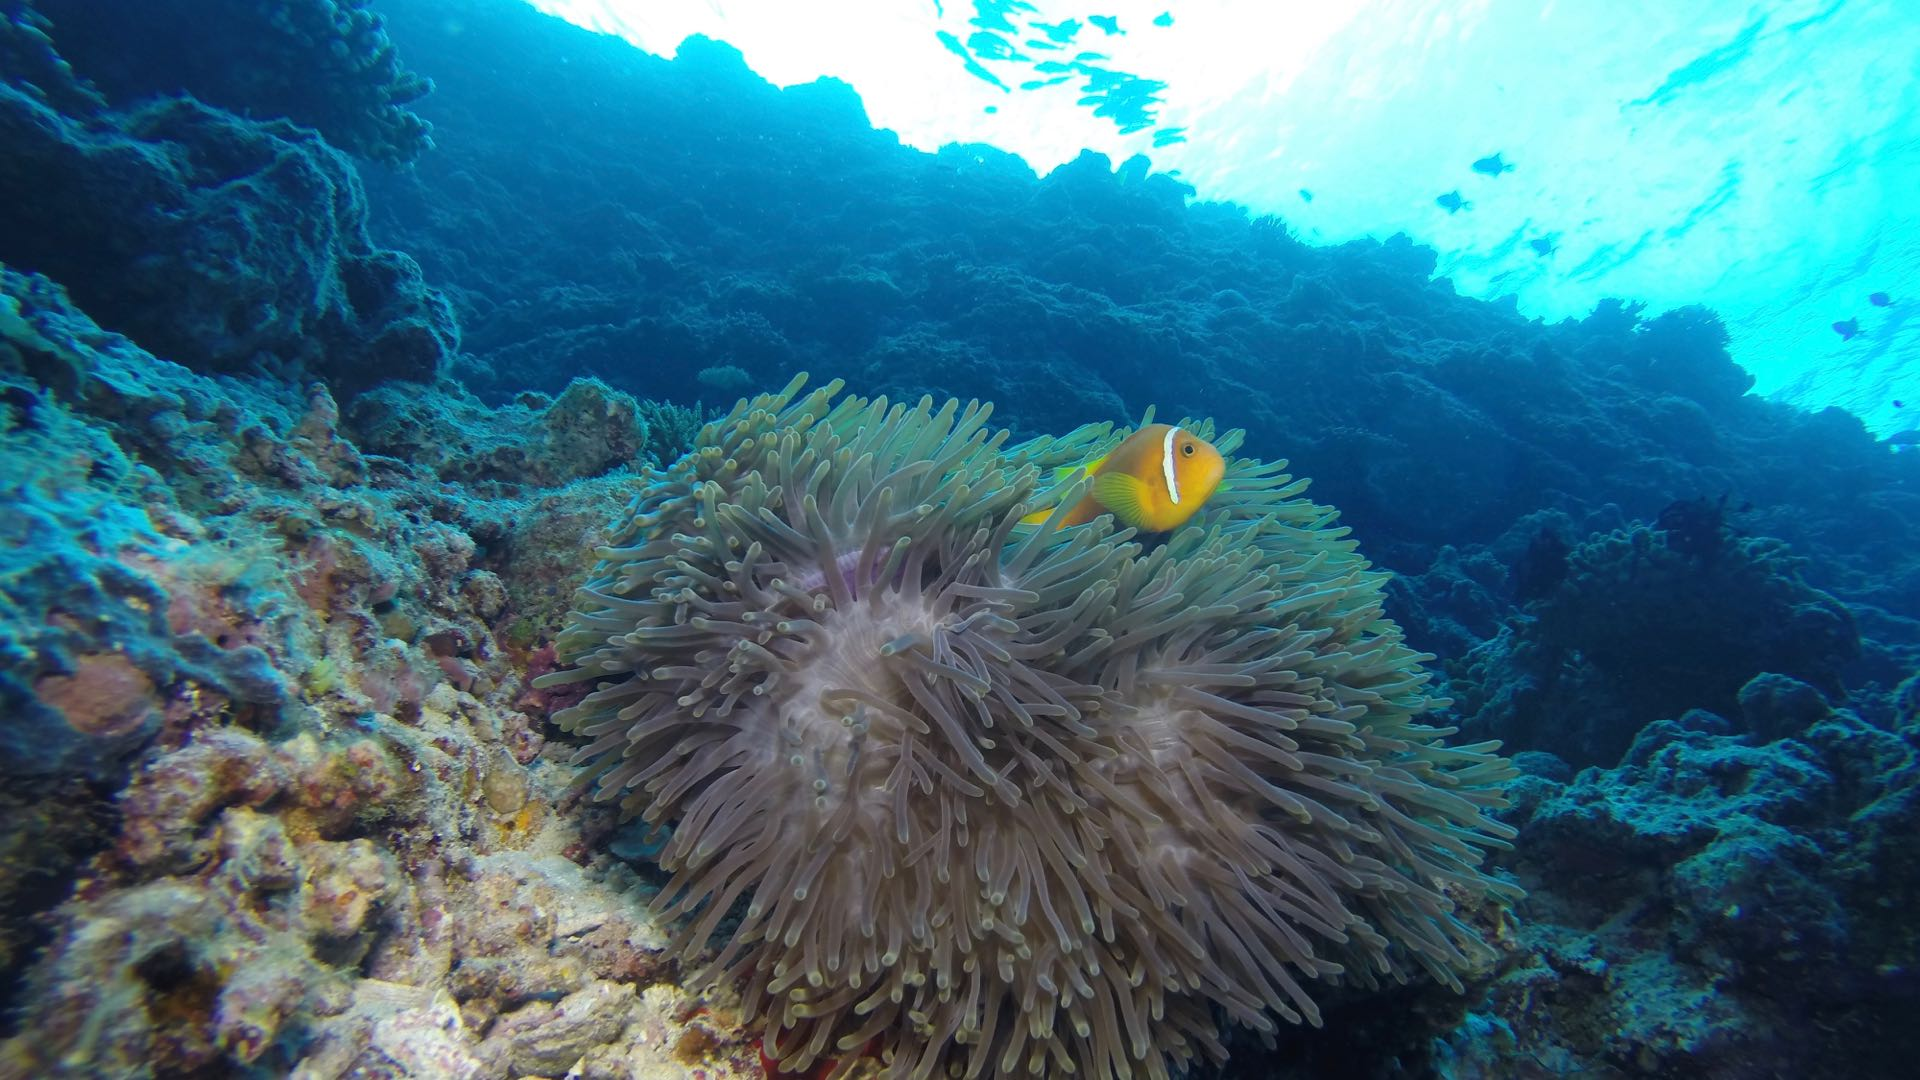 Underwater Scenery Maldives Diving Anemone